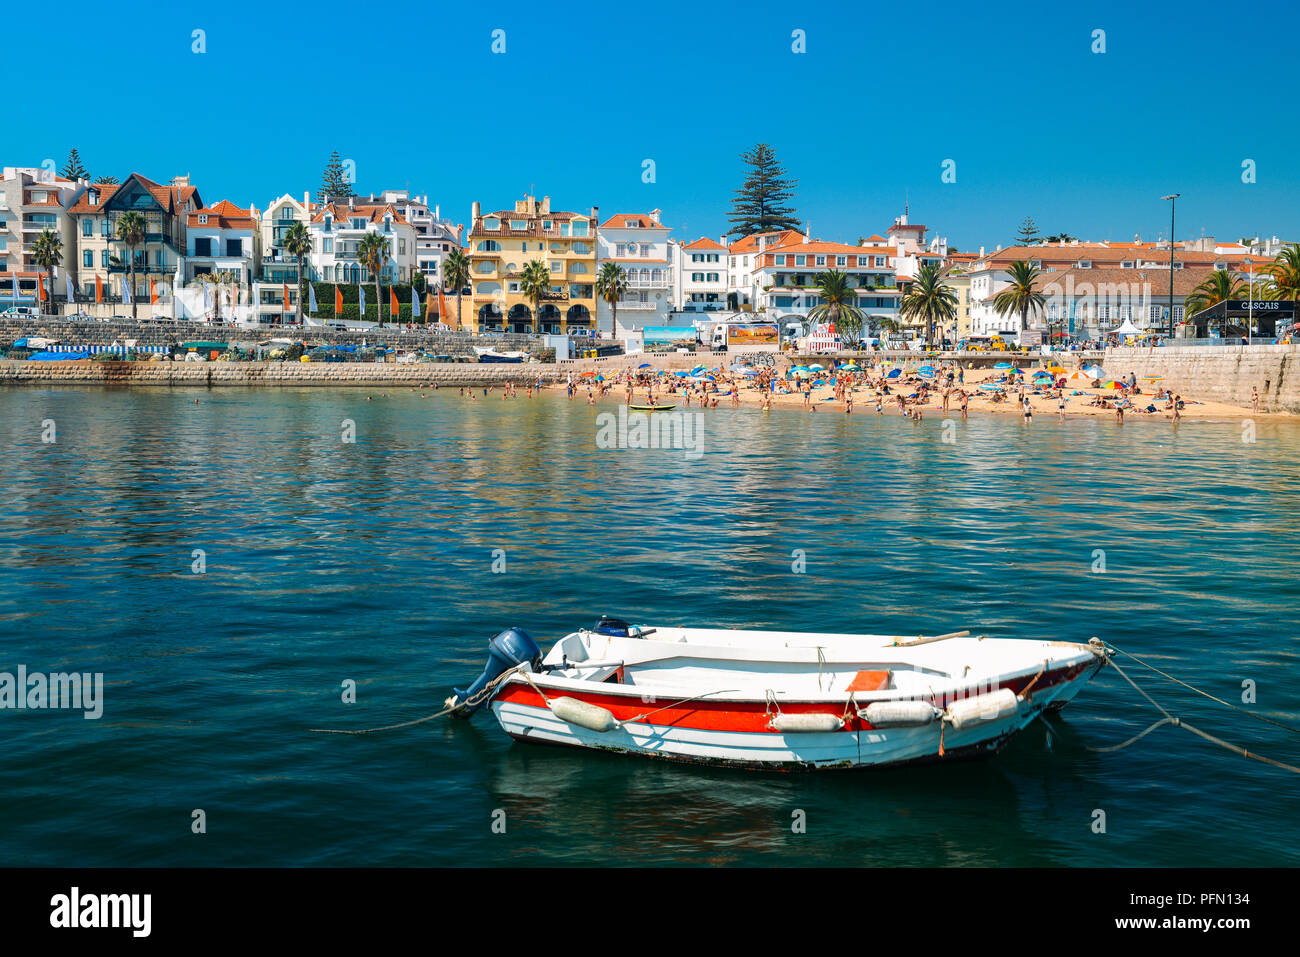 cascais-portugal-august-21-2018-fishing-boat-on-foreground-with-crowded-sandy-beach-in-cascais-near-lisbon-portugal-during-the-summer-PFN134.jpg